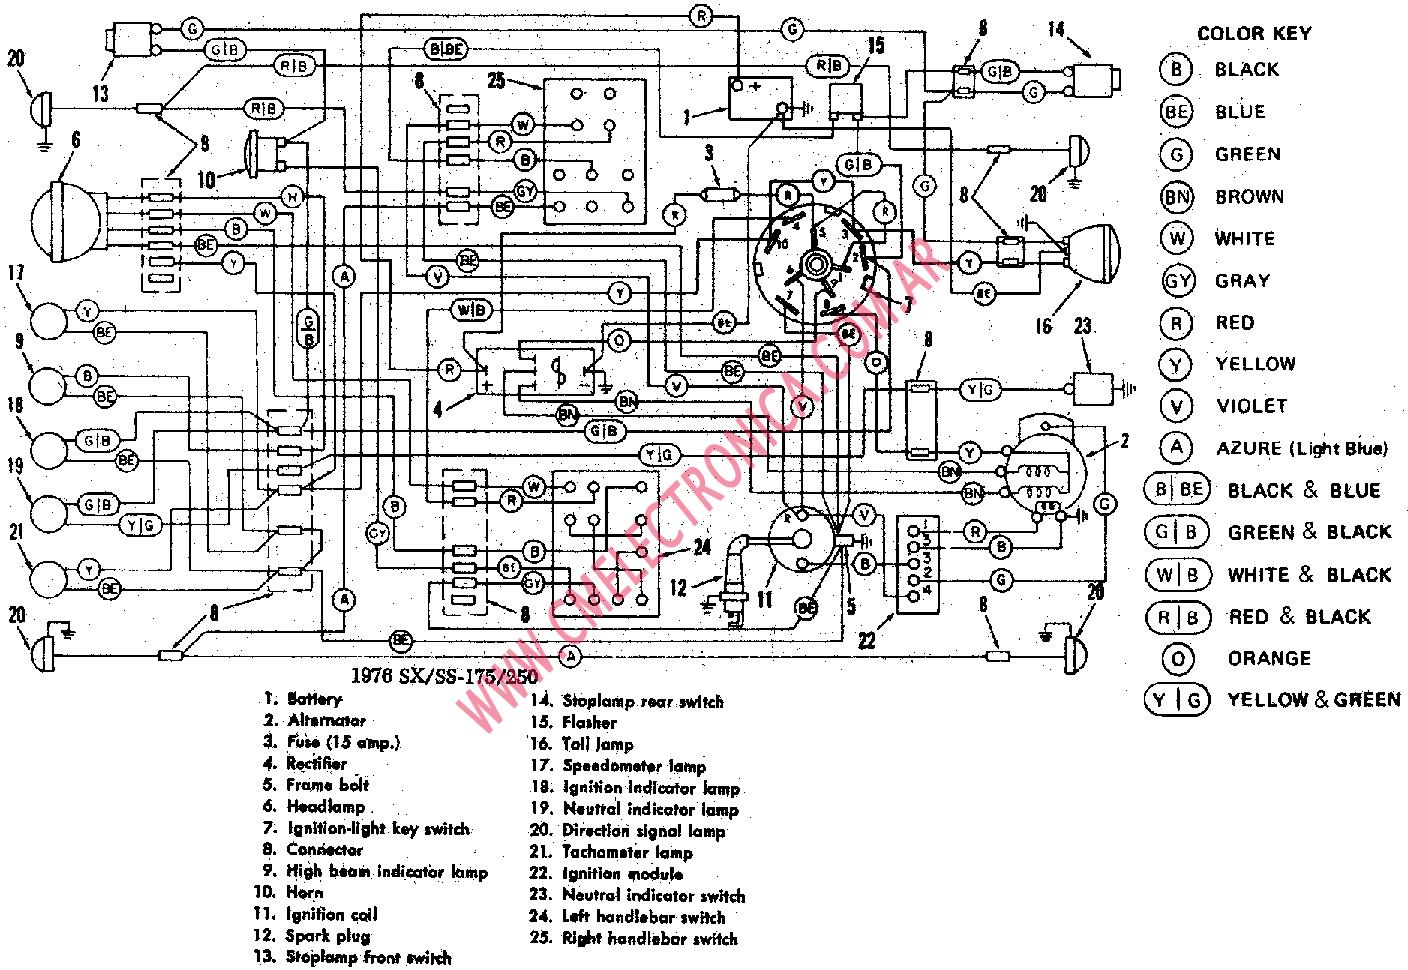 1996 Lt1 Engine Wiring Diagram Books Of 1993 Zr 500 Motor Free Image For User